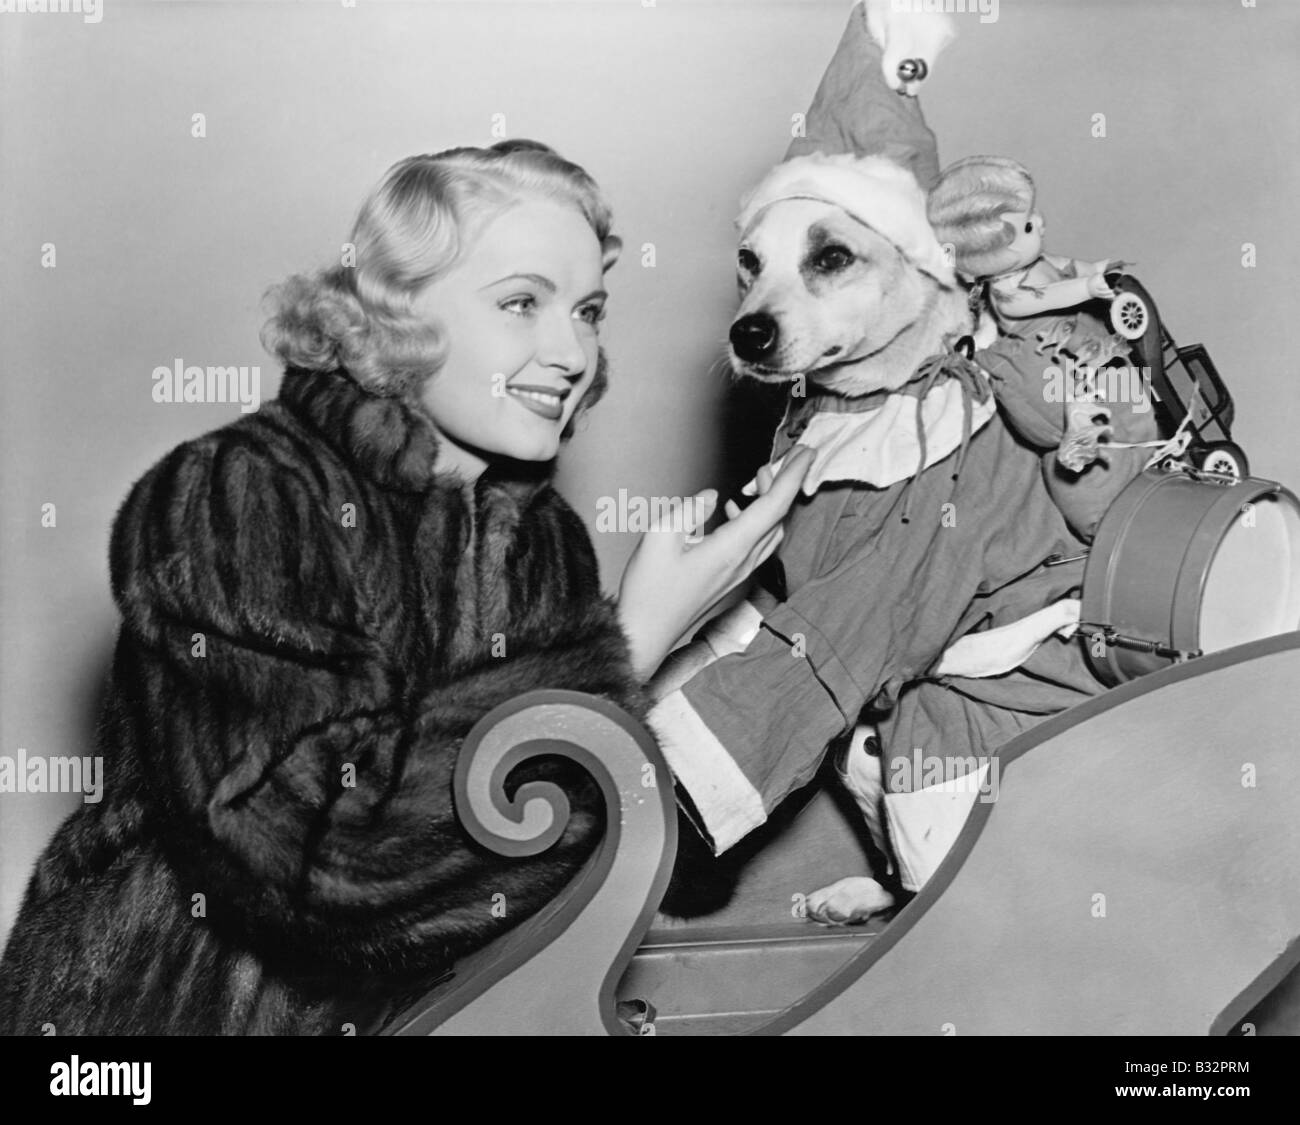 Woman with dog in Christmas outfit - Stock Image